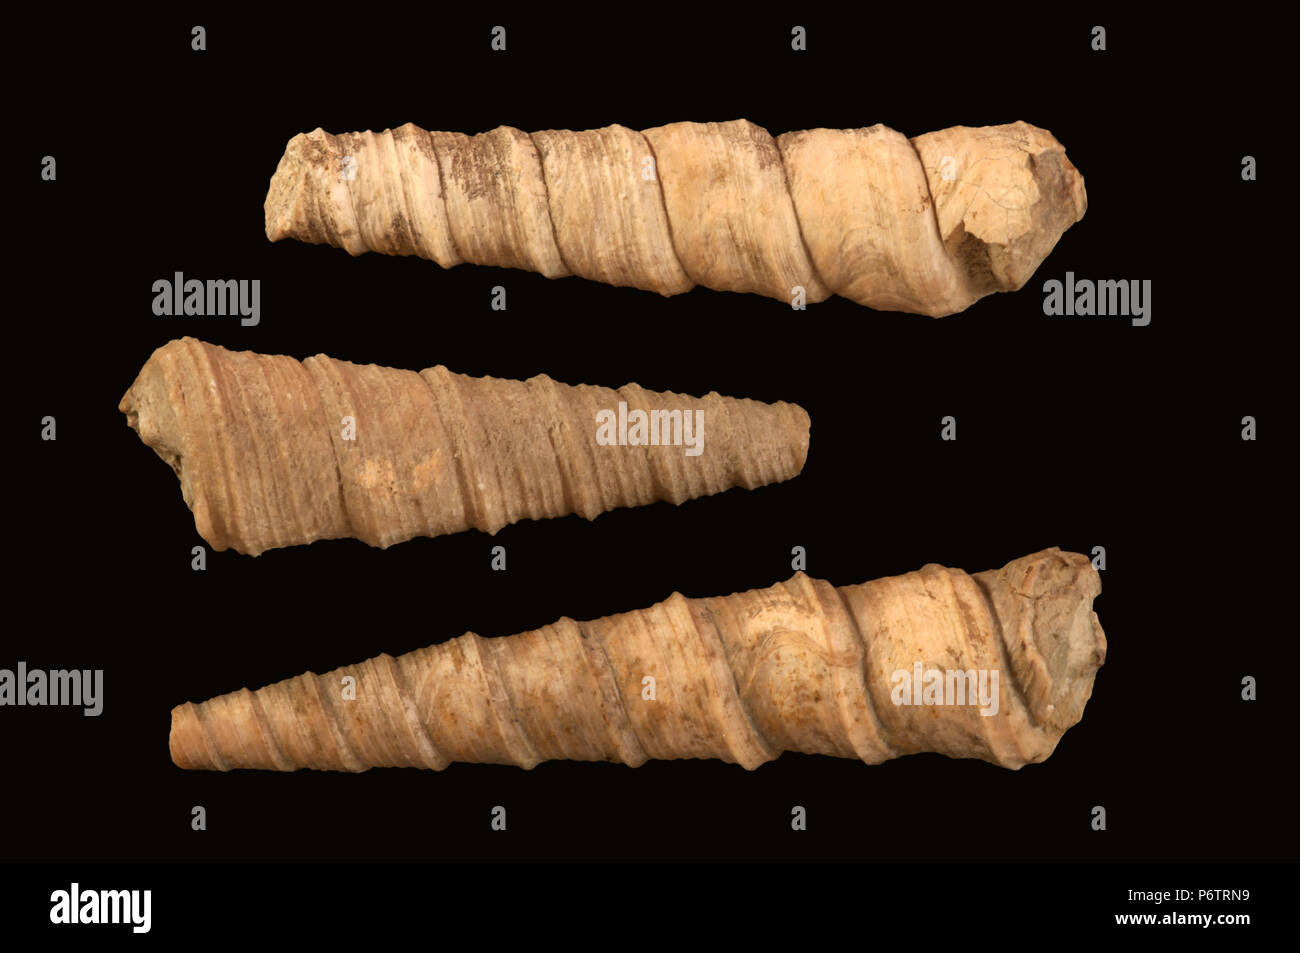 Seashells of Turritella figolina (fossil). Malacology collection. Spain. Europe - Stock Image